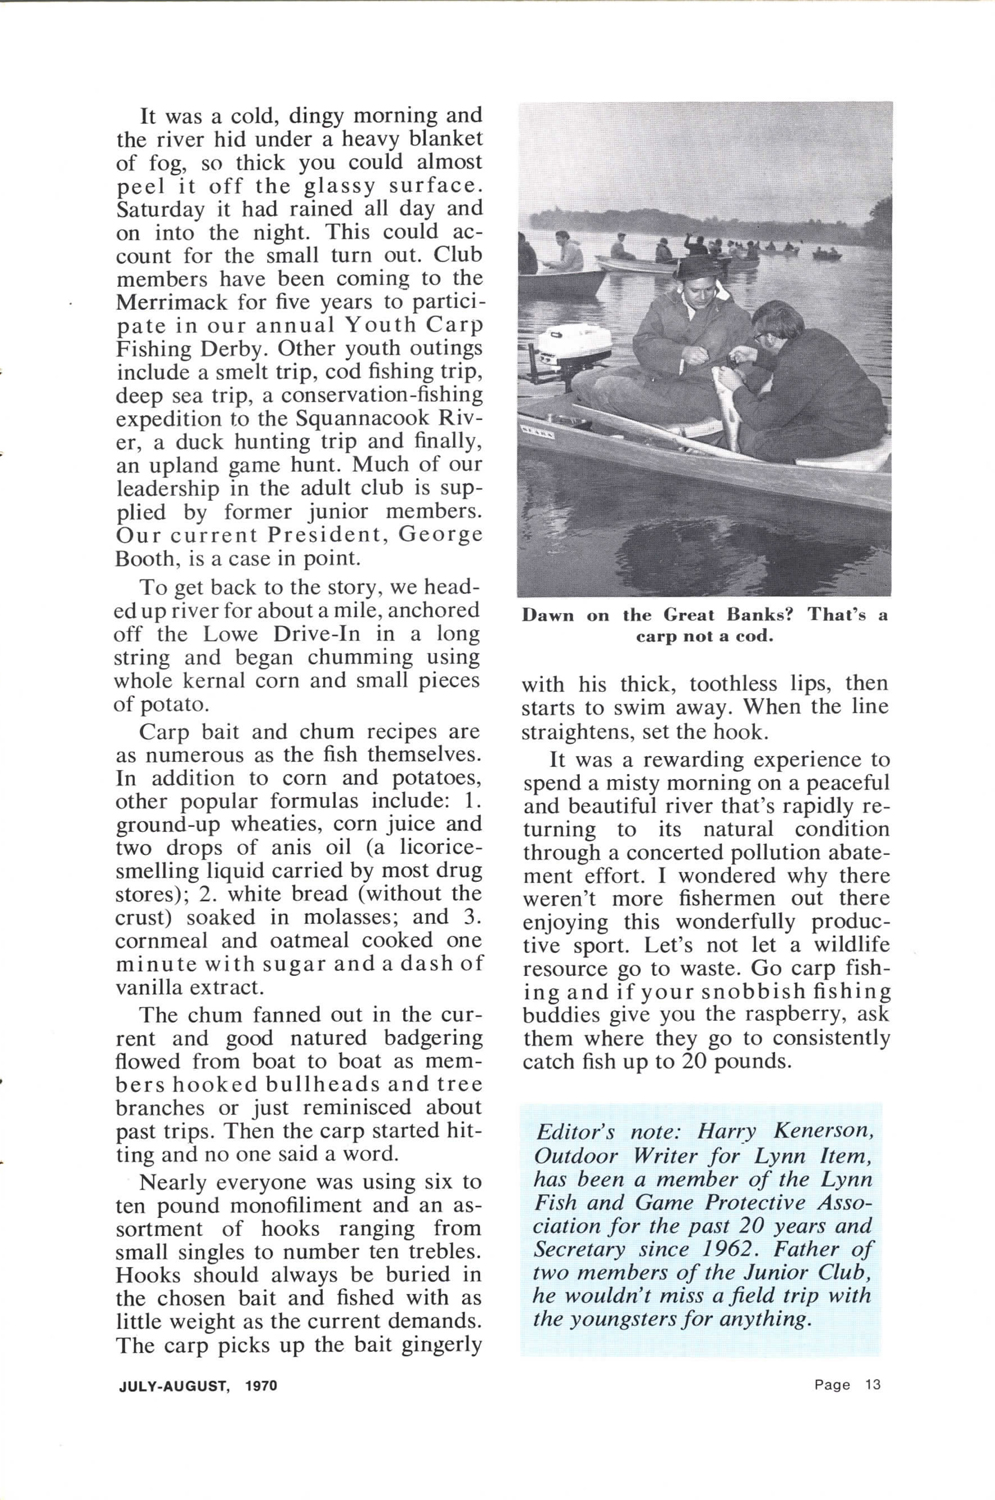 MassWildLife-Magazine_1970_jul-aug_carp-fit-the-part-4.jpg